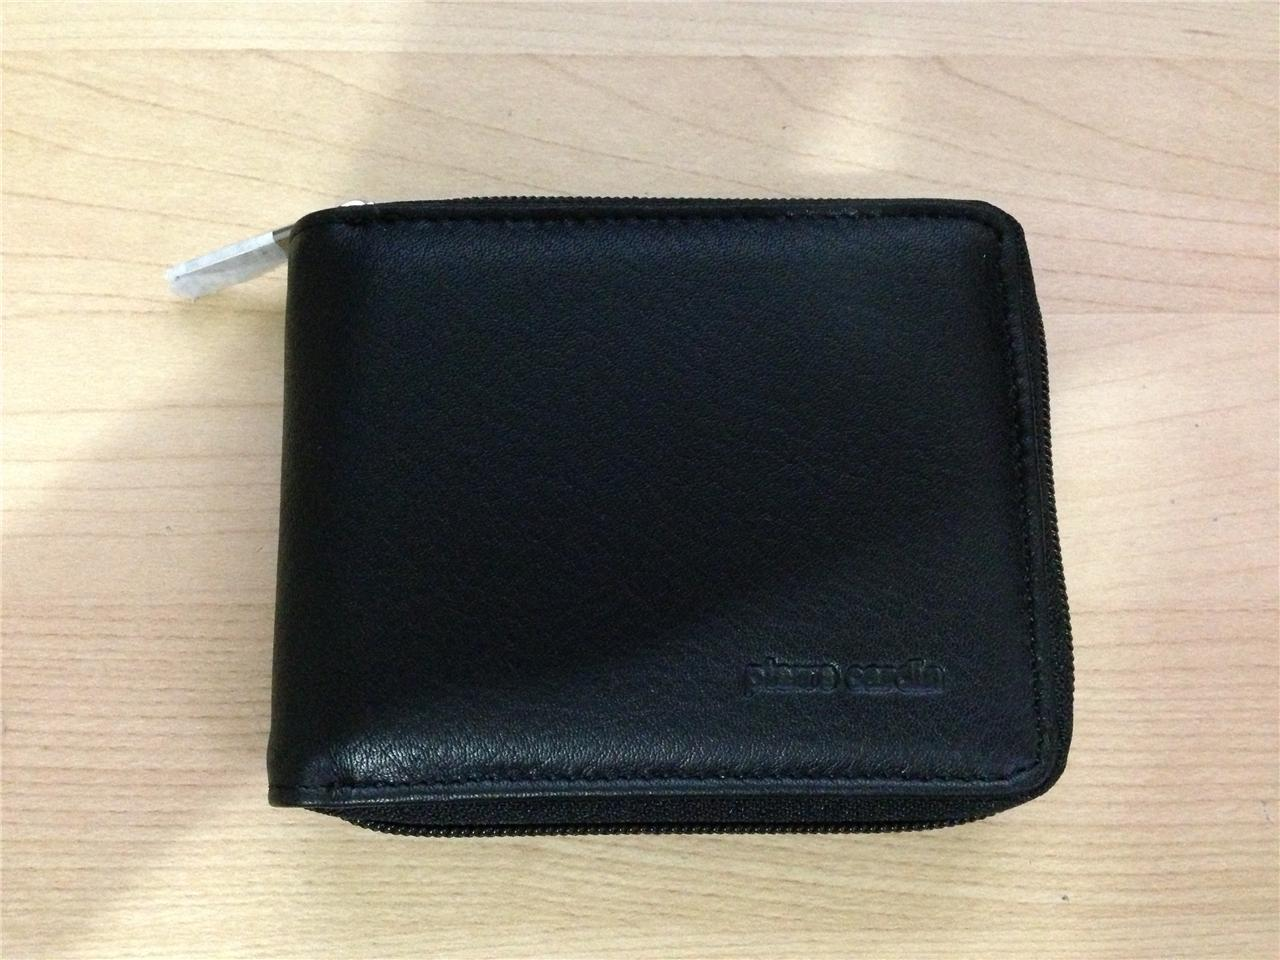 Pierre Cardin Leather Wallet Clip Coin Purse ZIP Closure ...